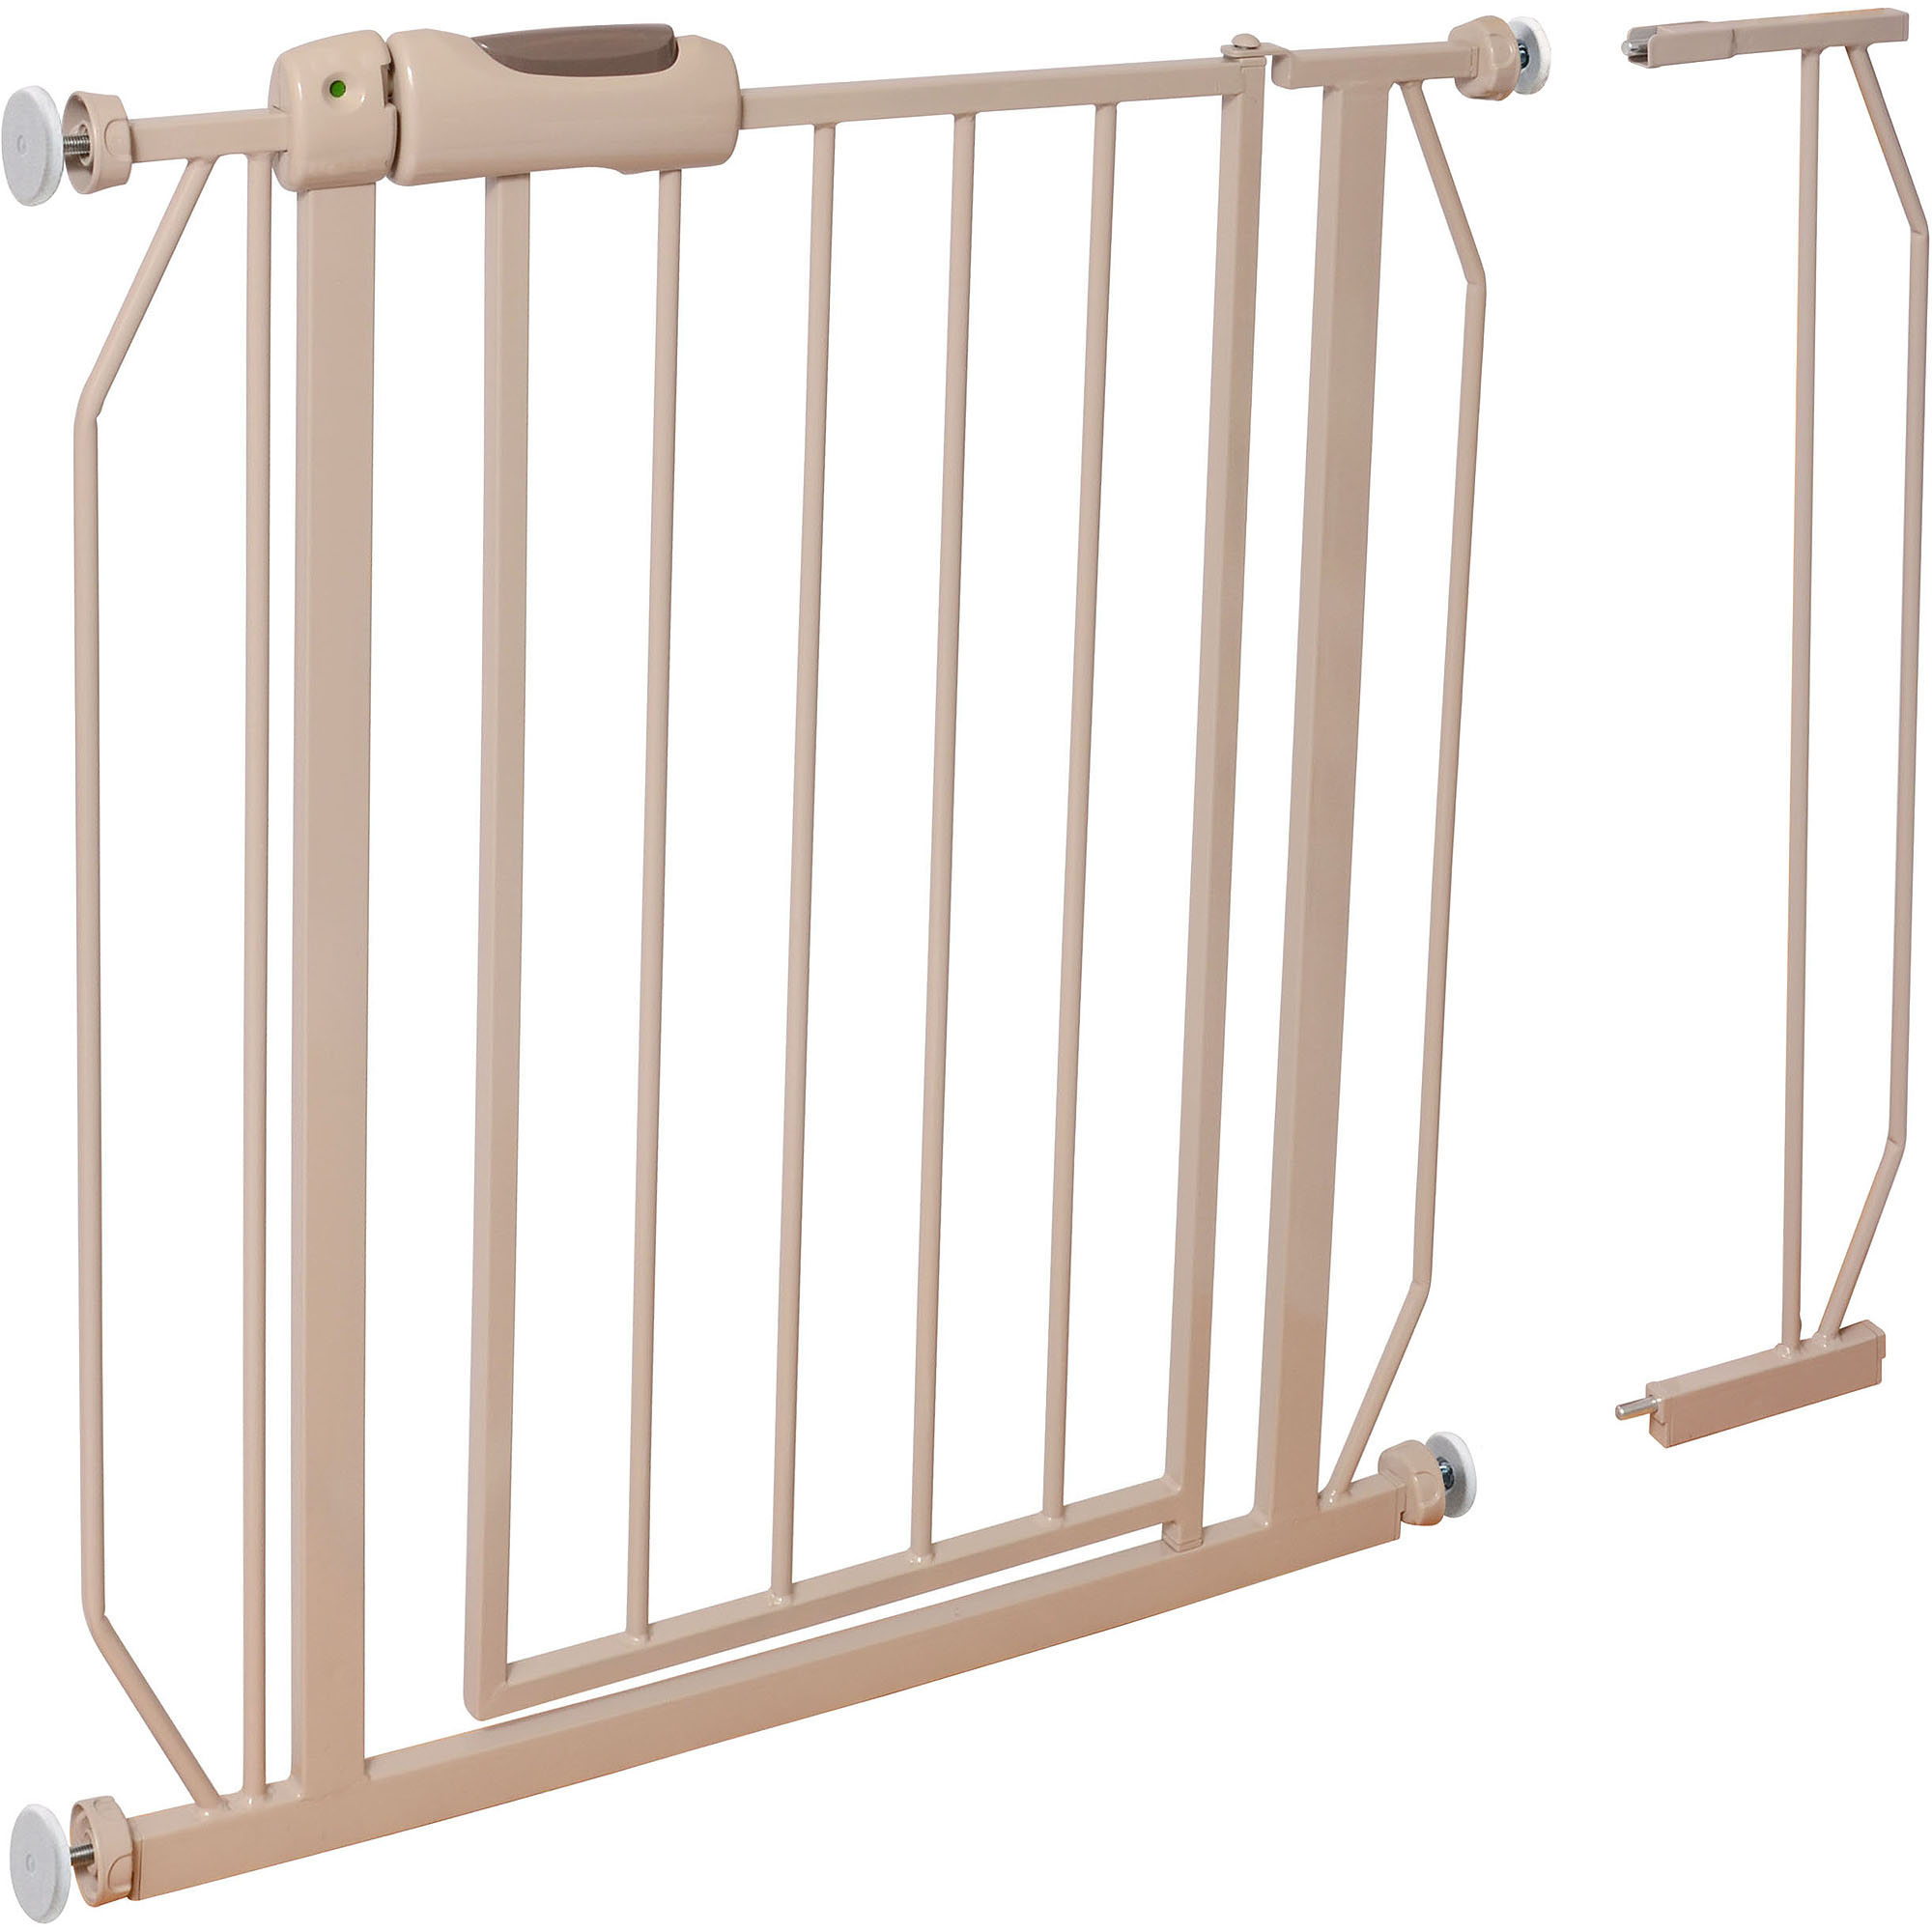 Evenflo Easy Walk-Thru Metal Gate